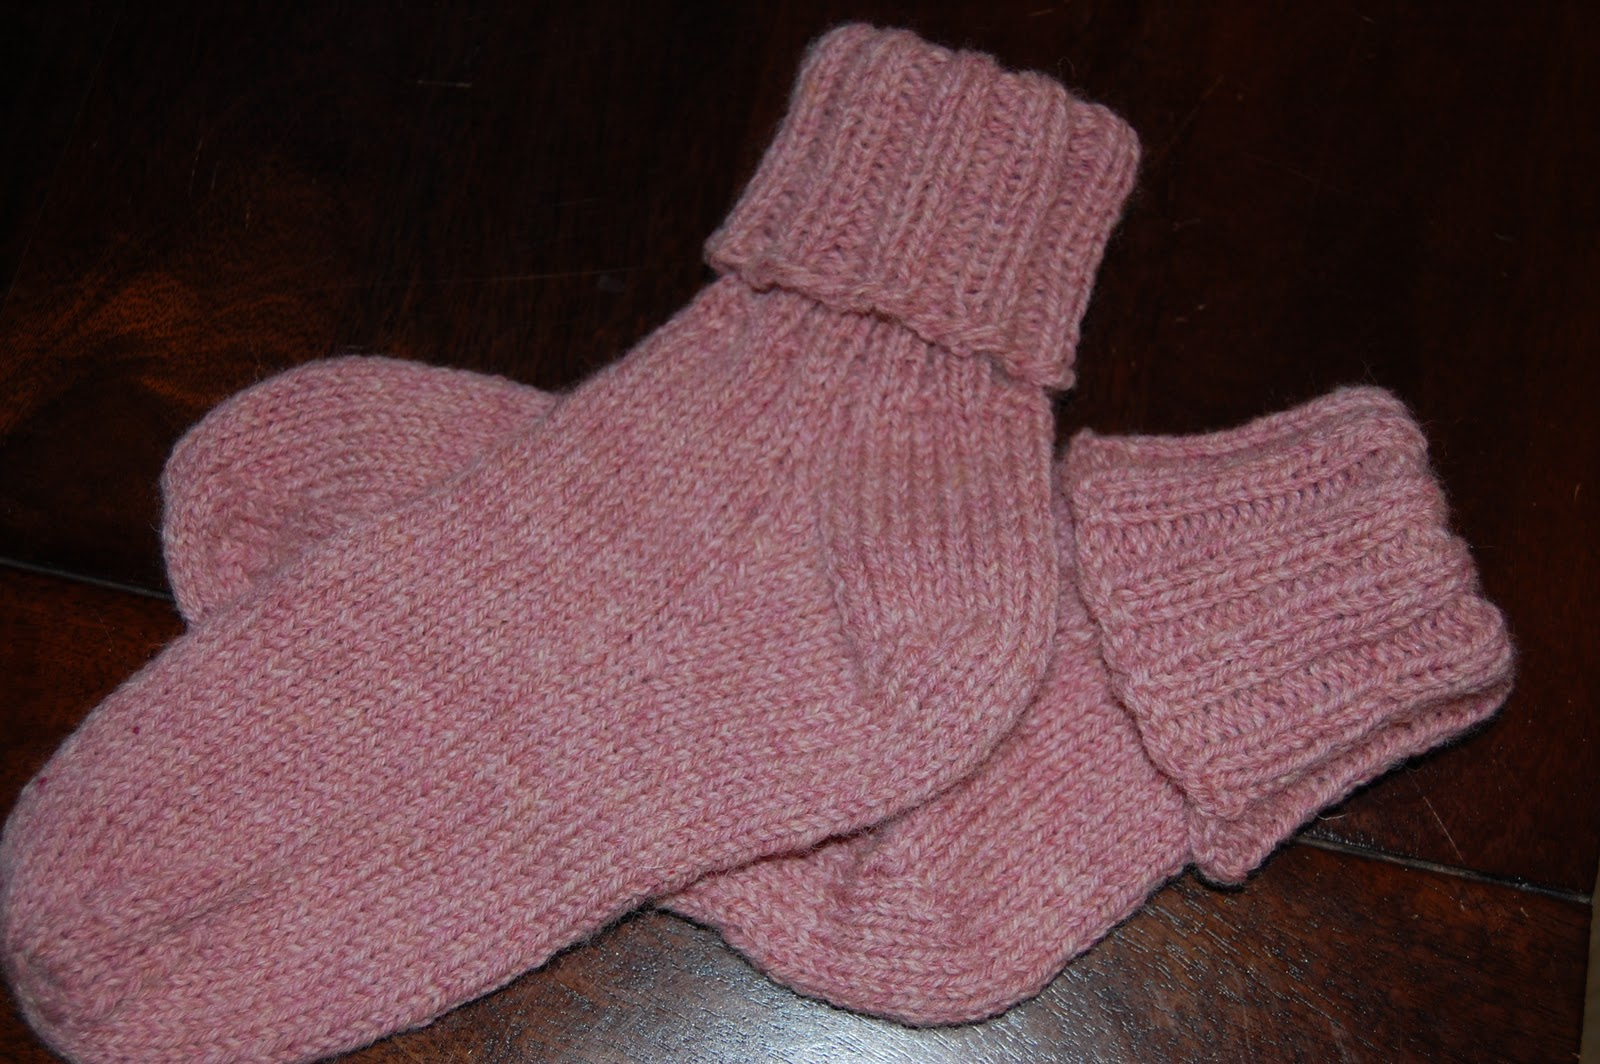 Easy Sock Knitting Pattern : Free Sock Pattern Easy Toe Up Socks Knitting Tattoo ...